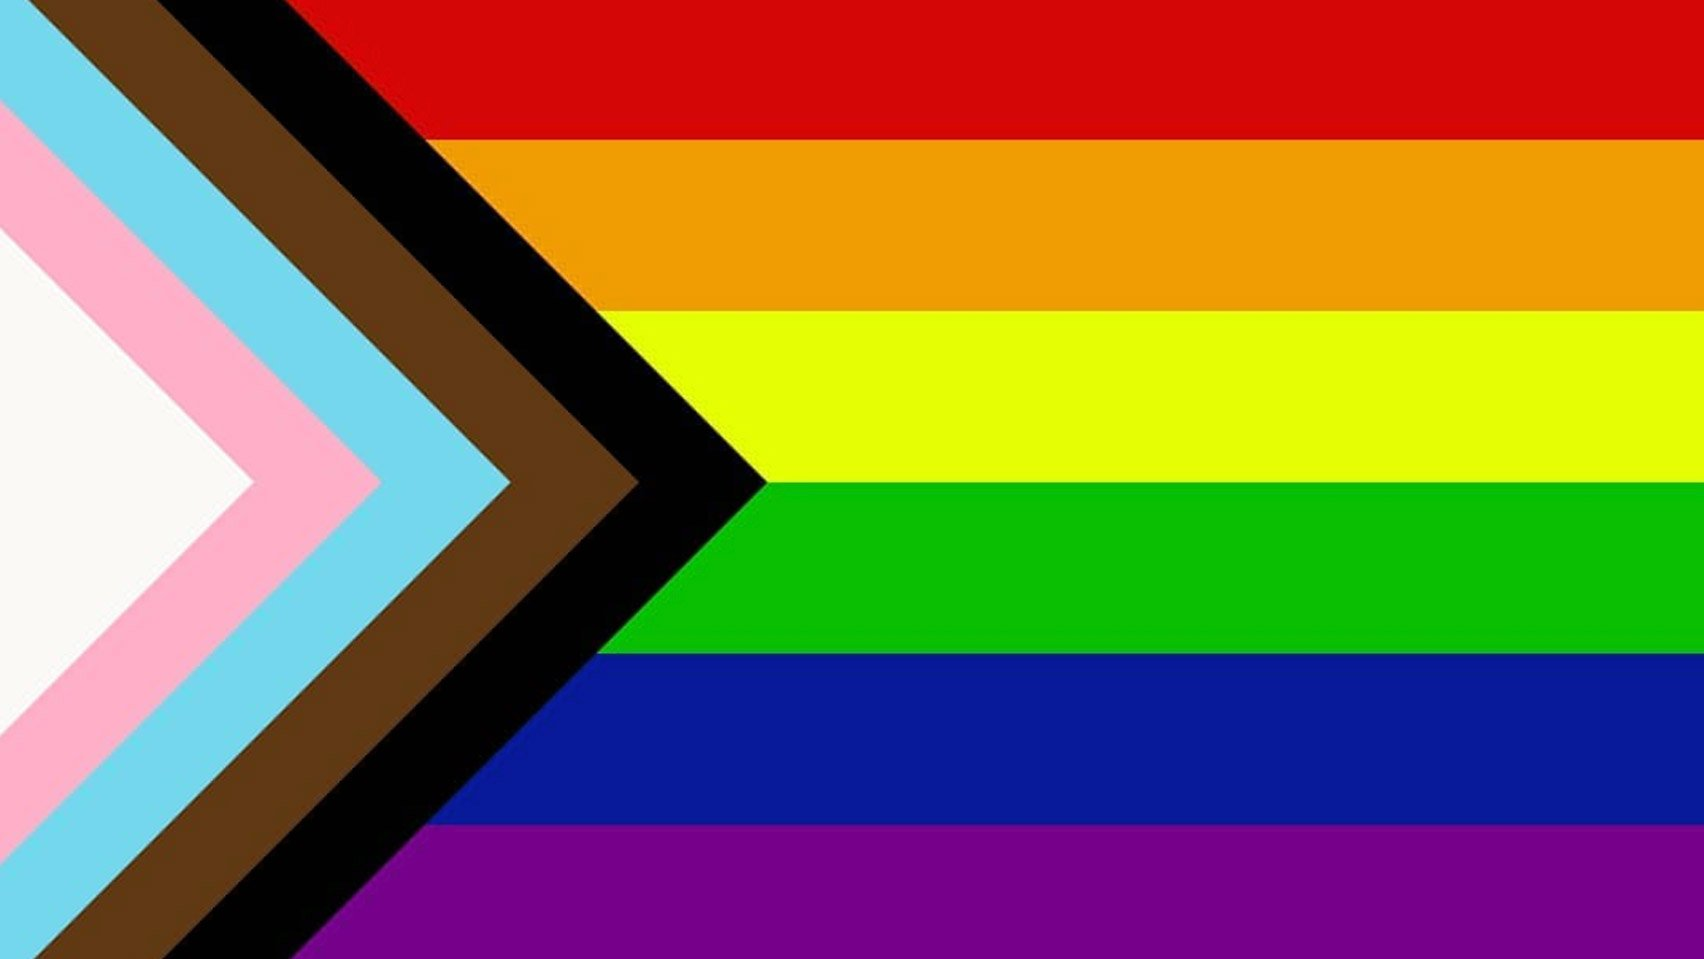 """A progrerssive """"Pride"""" flag with a five-colored chevron to the classic Rainbow Flag to place a greater emphasis on """"inclusion and progression."""" The flag includes black and brown stripes to represent marginalized LGBTQ+ communities of color, along with the colors pink, light blue and white, which are used on the Transgender Pride Flag."""